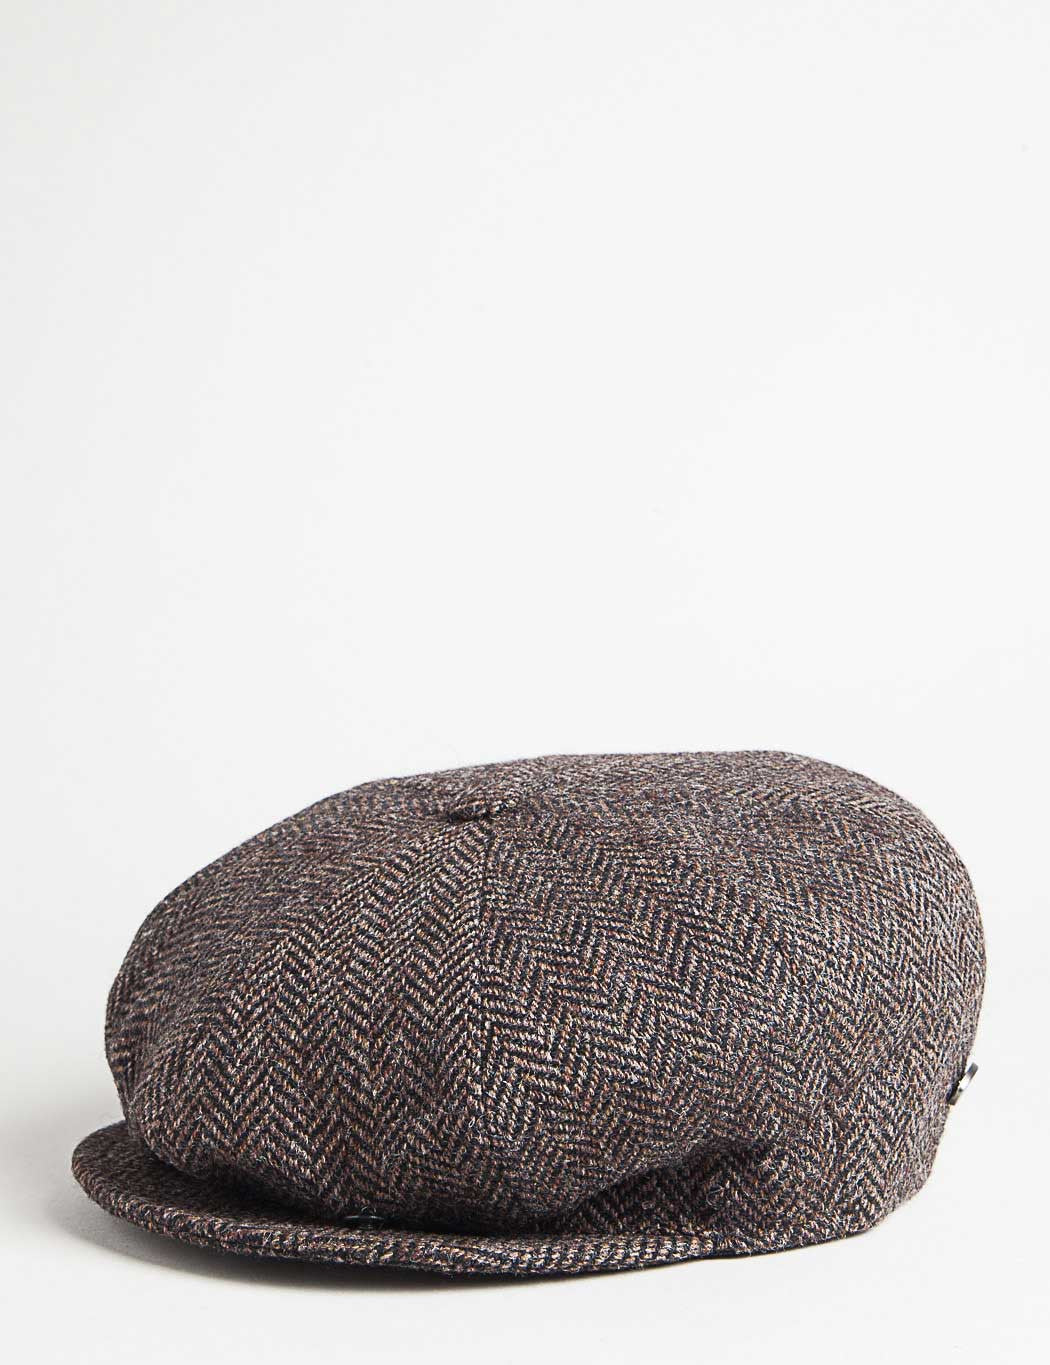 Bailey Galvin Herringbone Newsboy Cap - Brown/Black